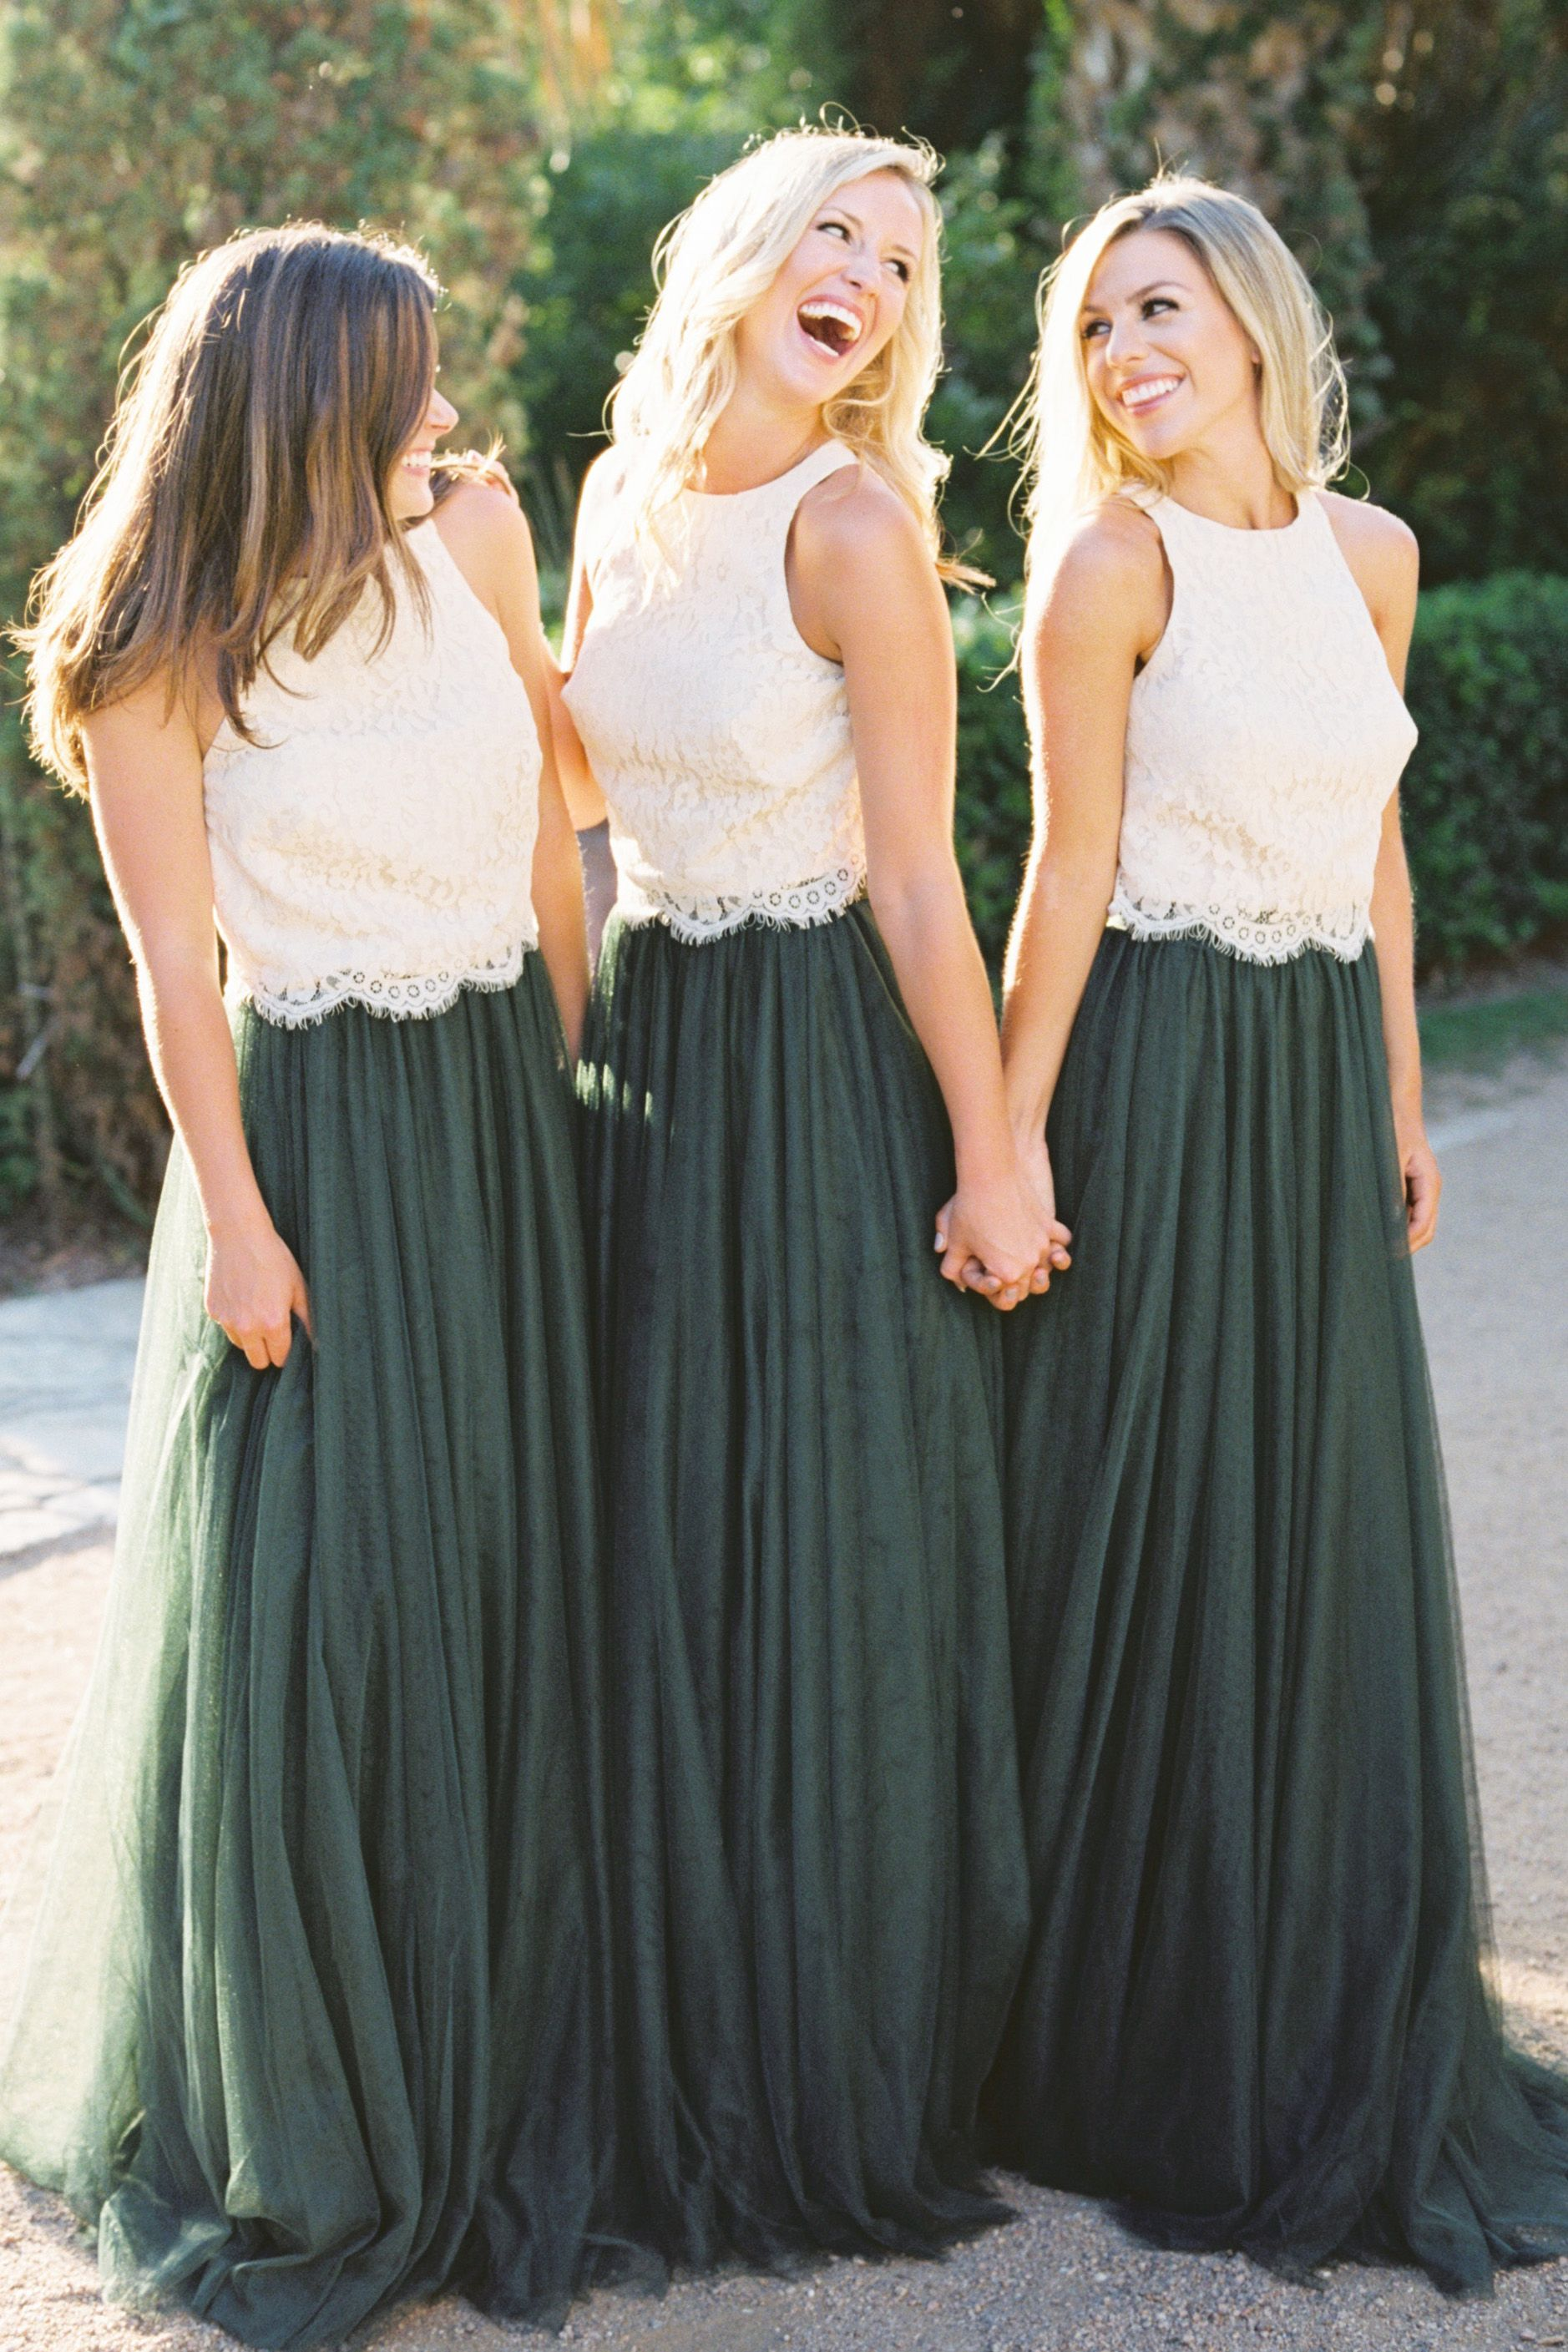 Dress for wedding party for girl  Bridesmaid dresses and separates from the leading ecommerce